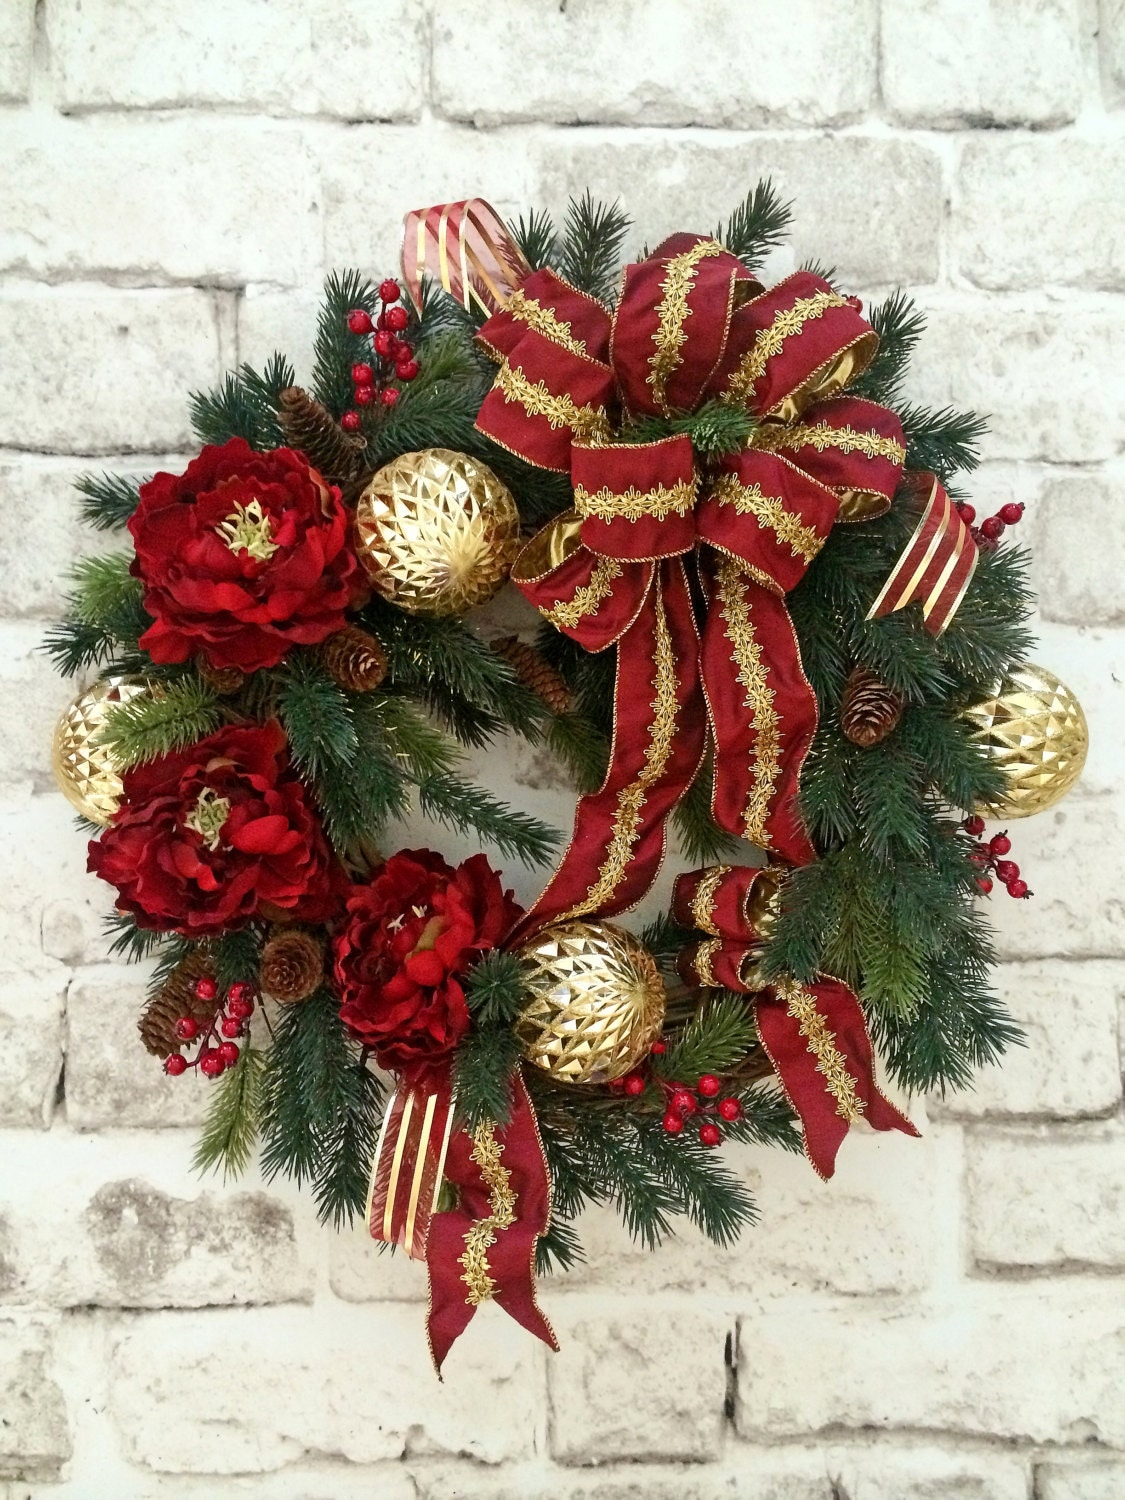 Christmas wreath holiday wreath christmas decor outdoor Christmas wreath decorations